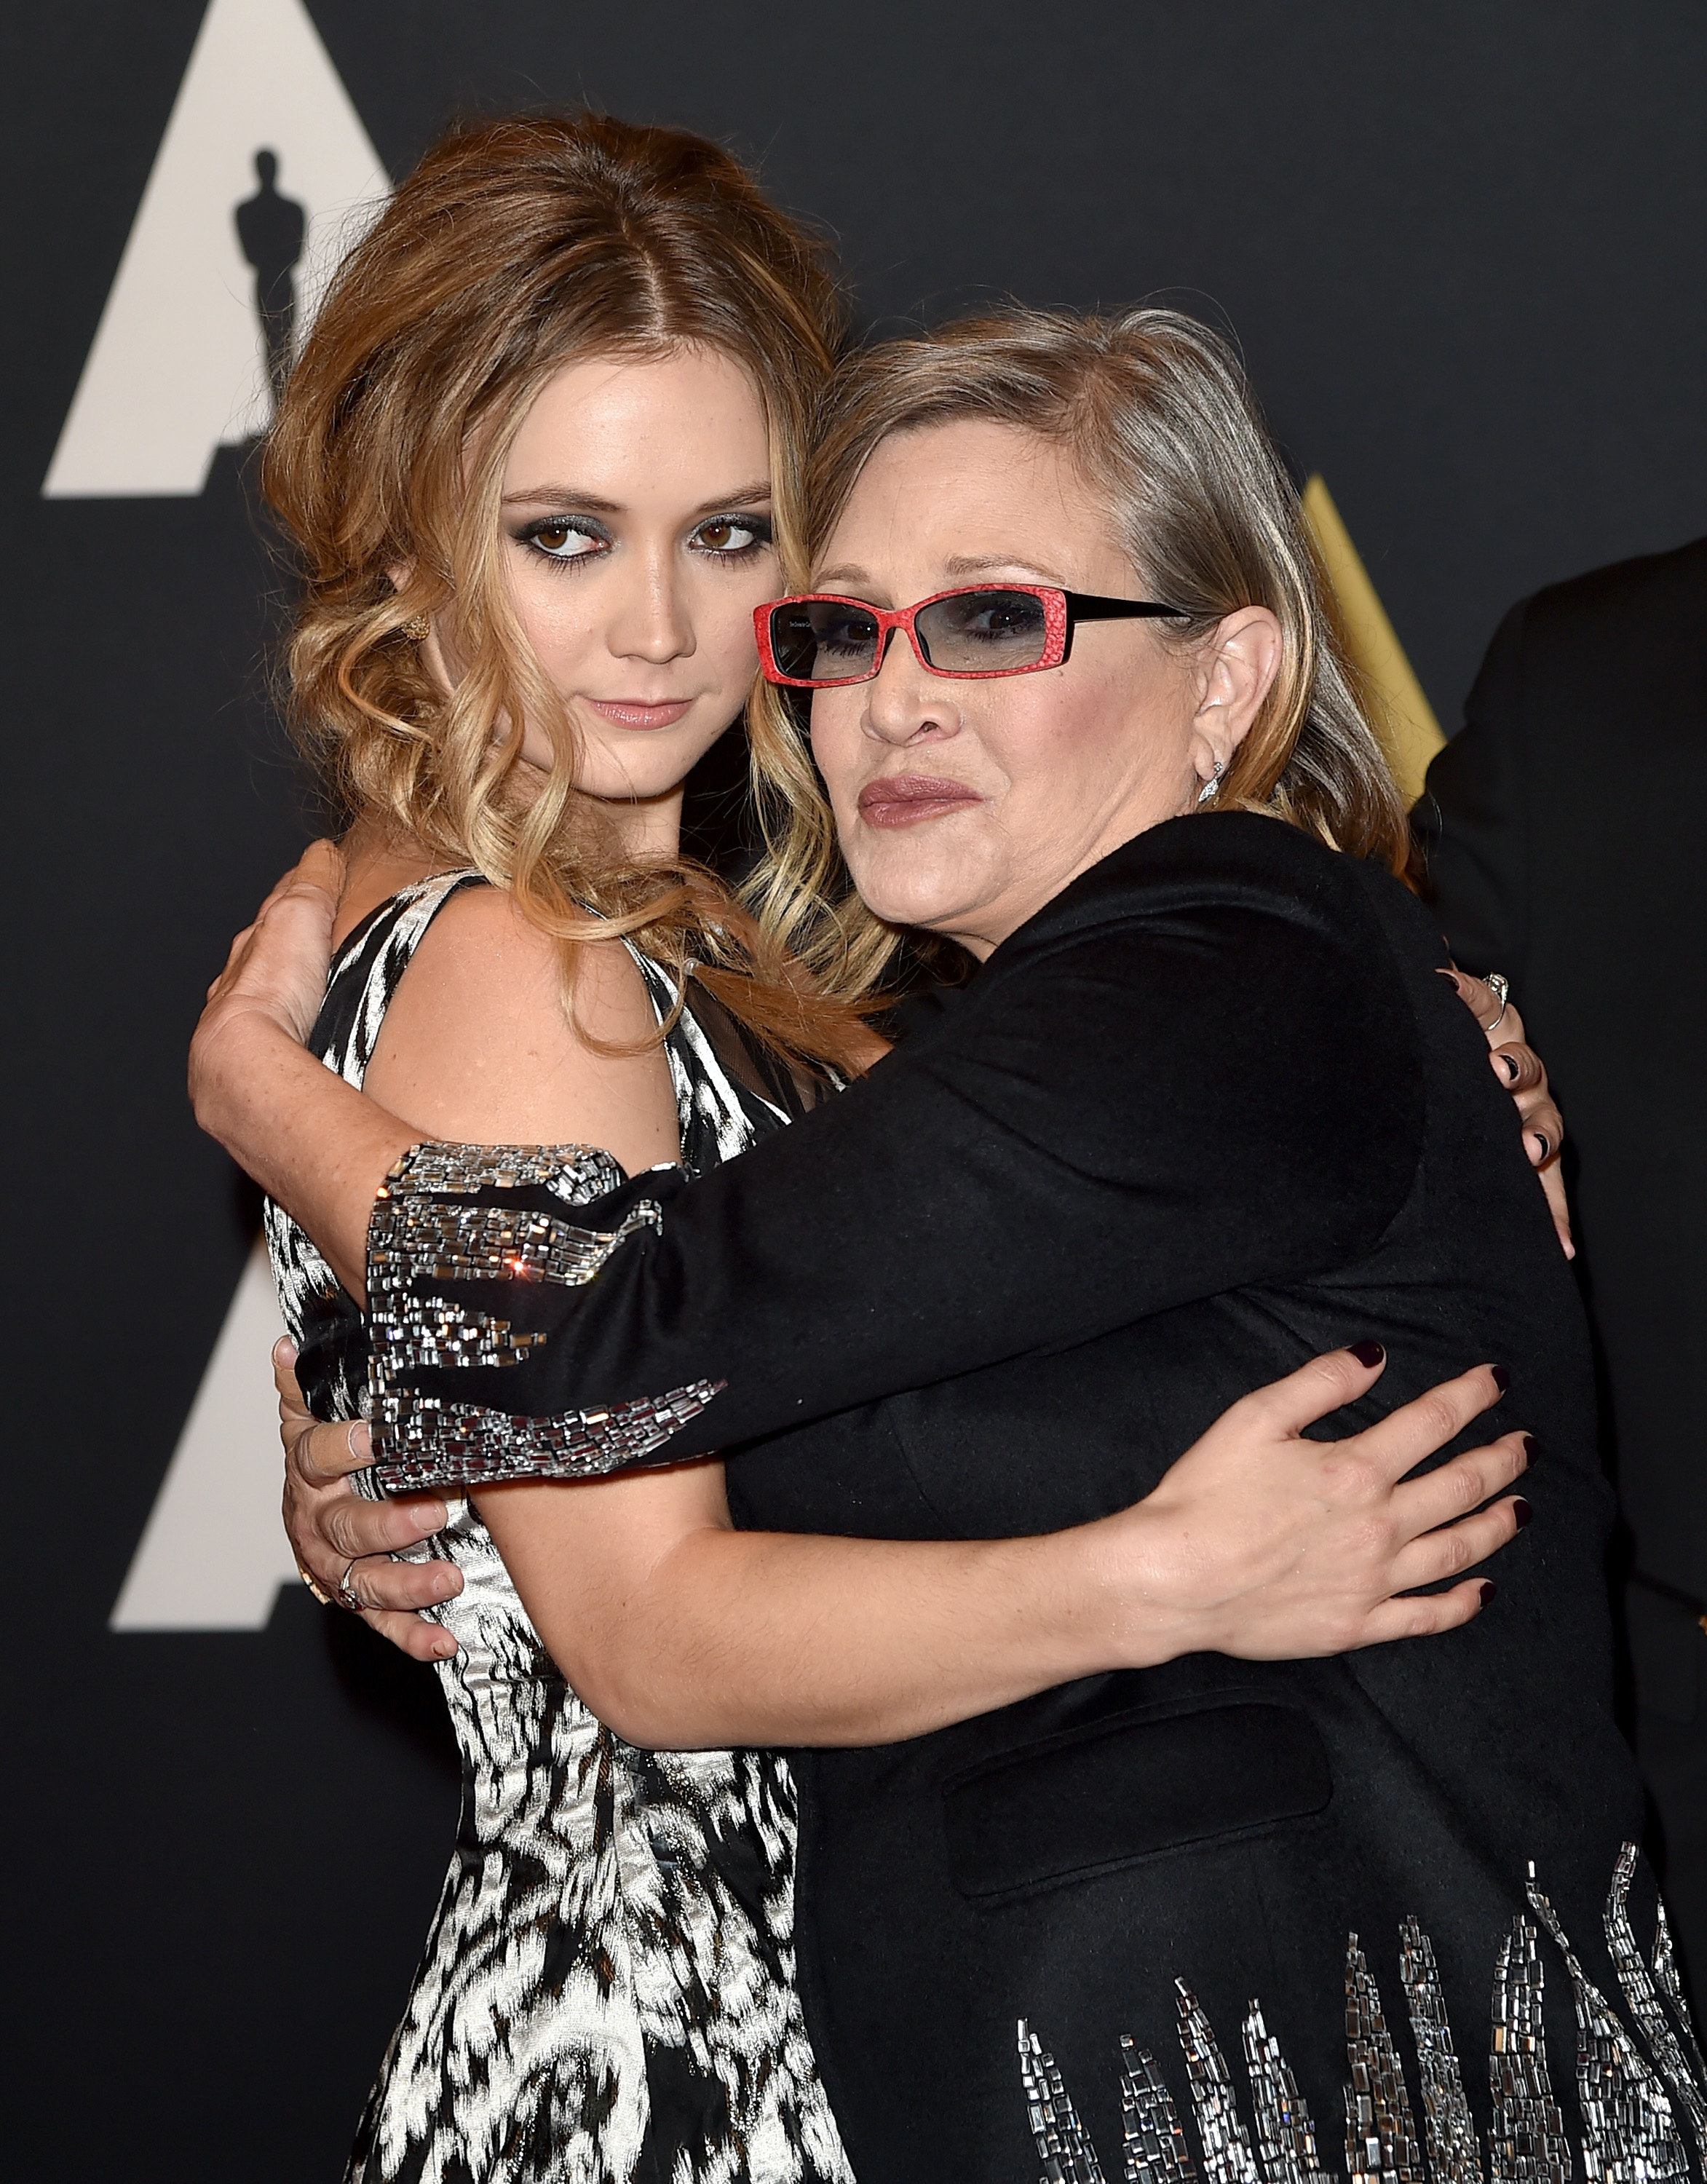 Billie Lourd Remembers Carrie Fisher's Birthday With Sweet Instagram Post